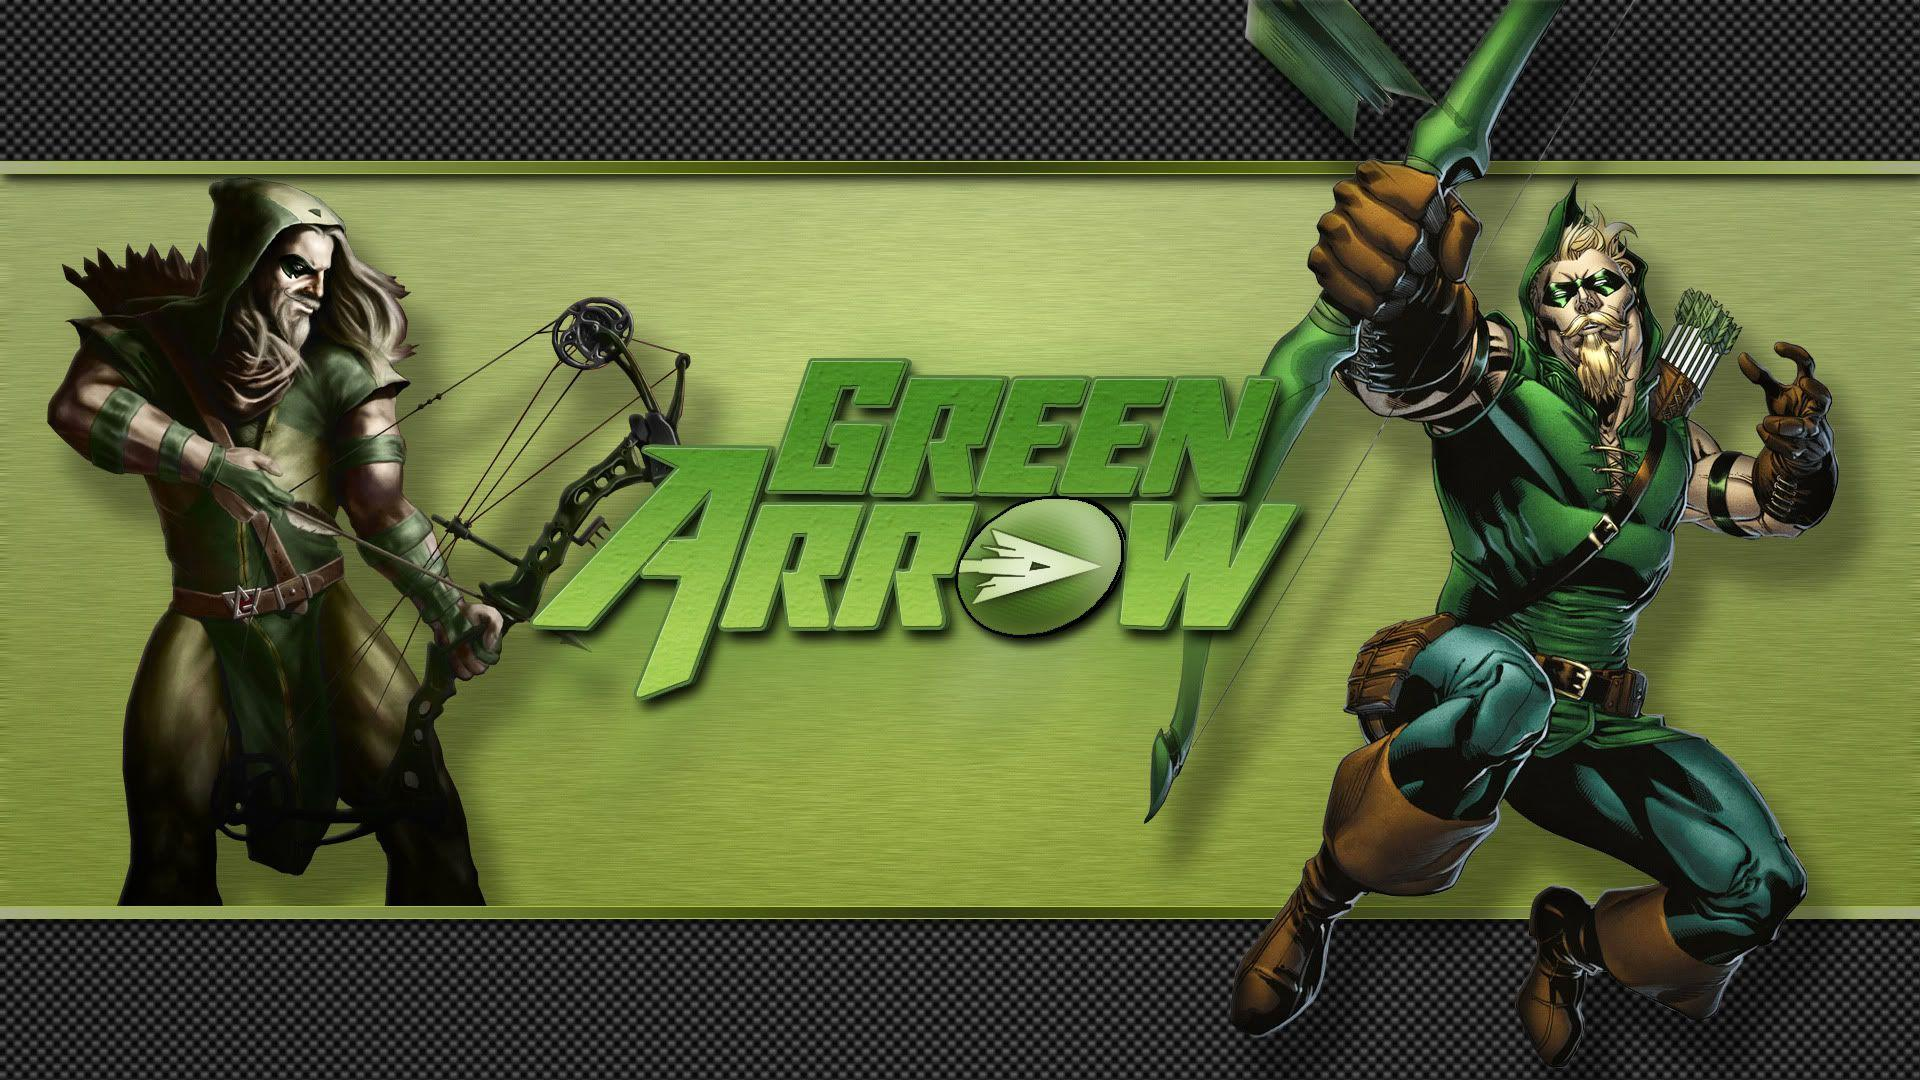 Image For > Green Arrow Wallpapers Hd